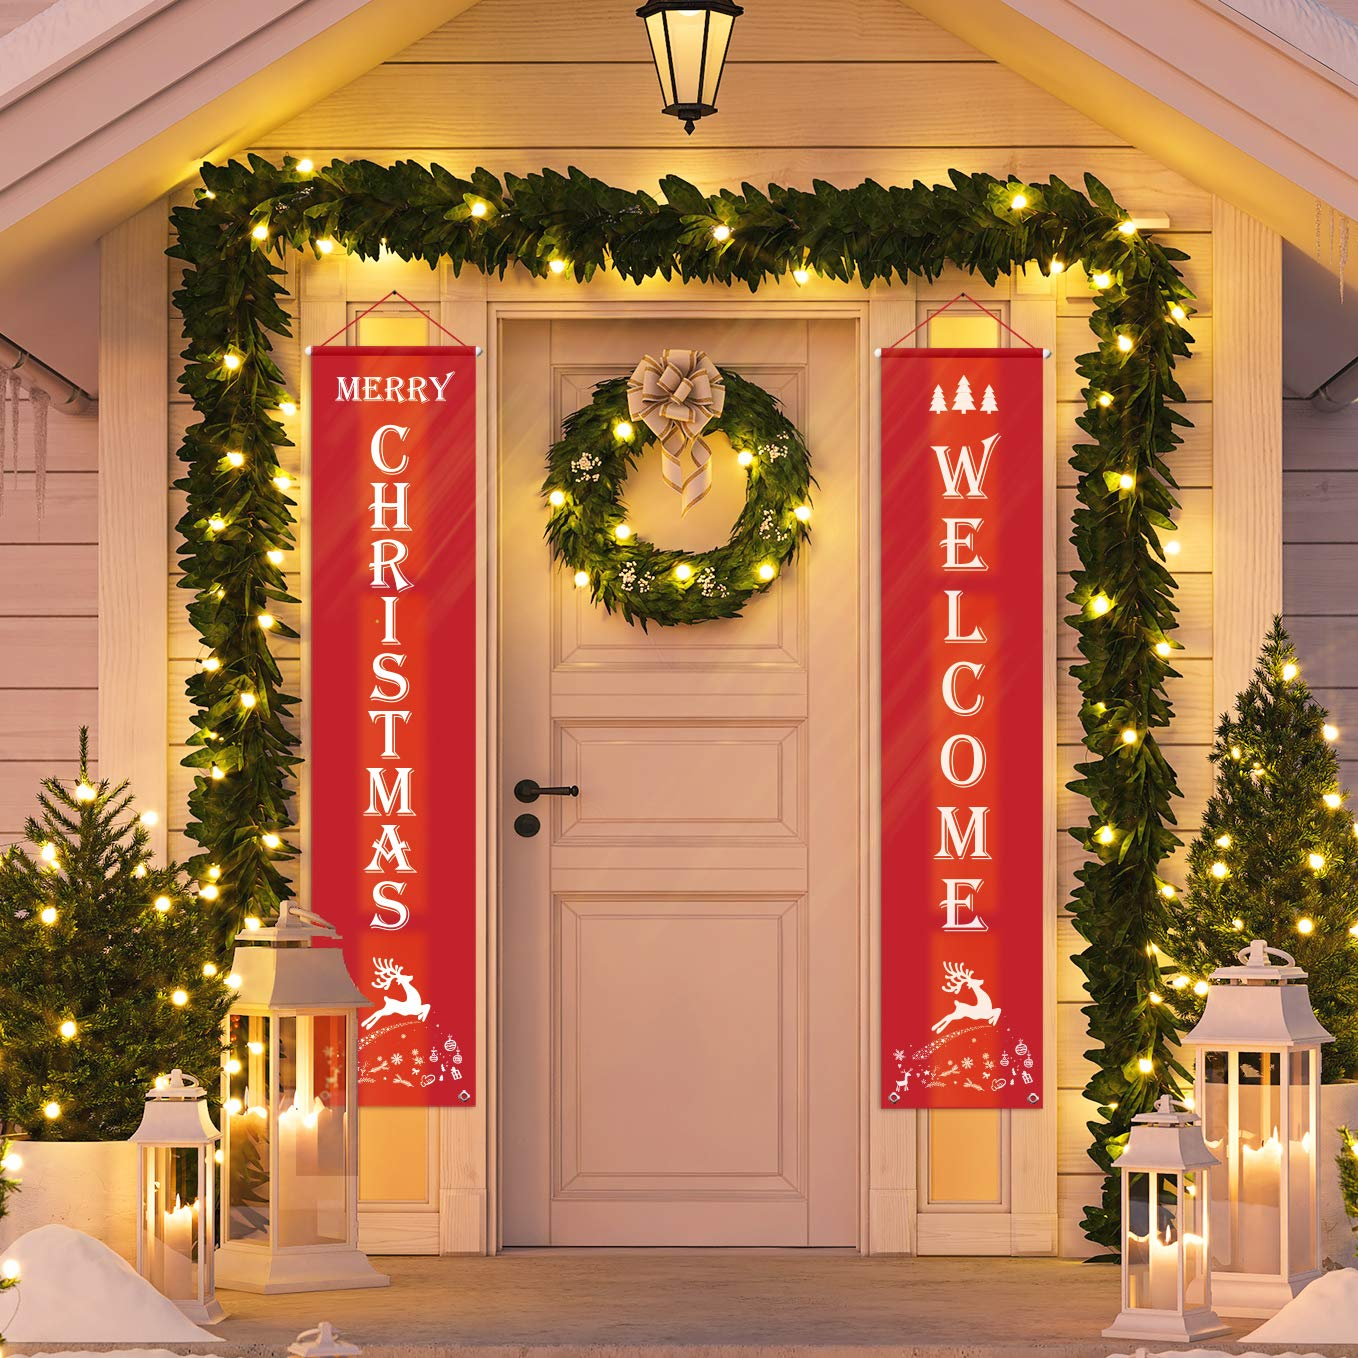 Apartment Christmas Decorations Indoor.Galleon Wowleo Christmas Door Banner Decorations Outdoor